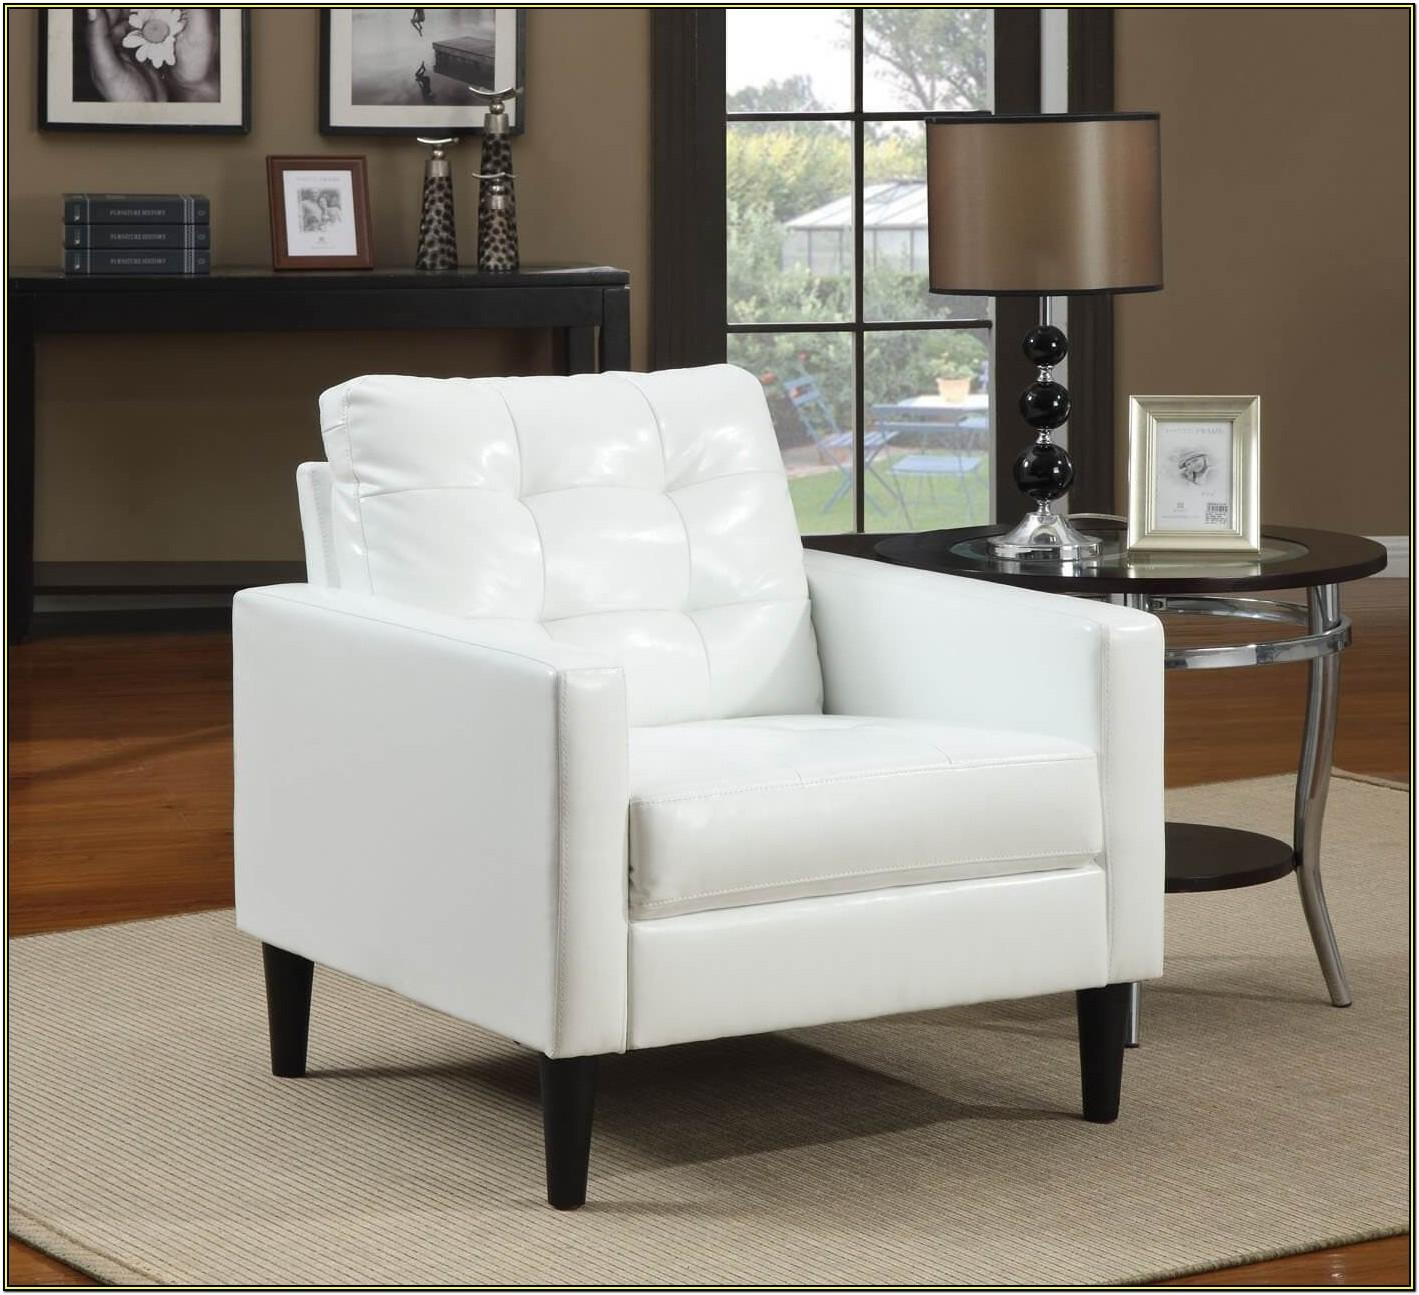 White Modern Chair For Living Room